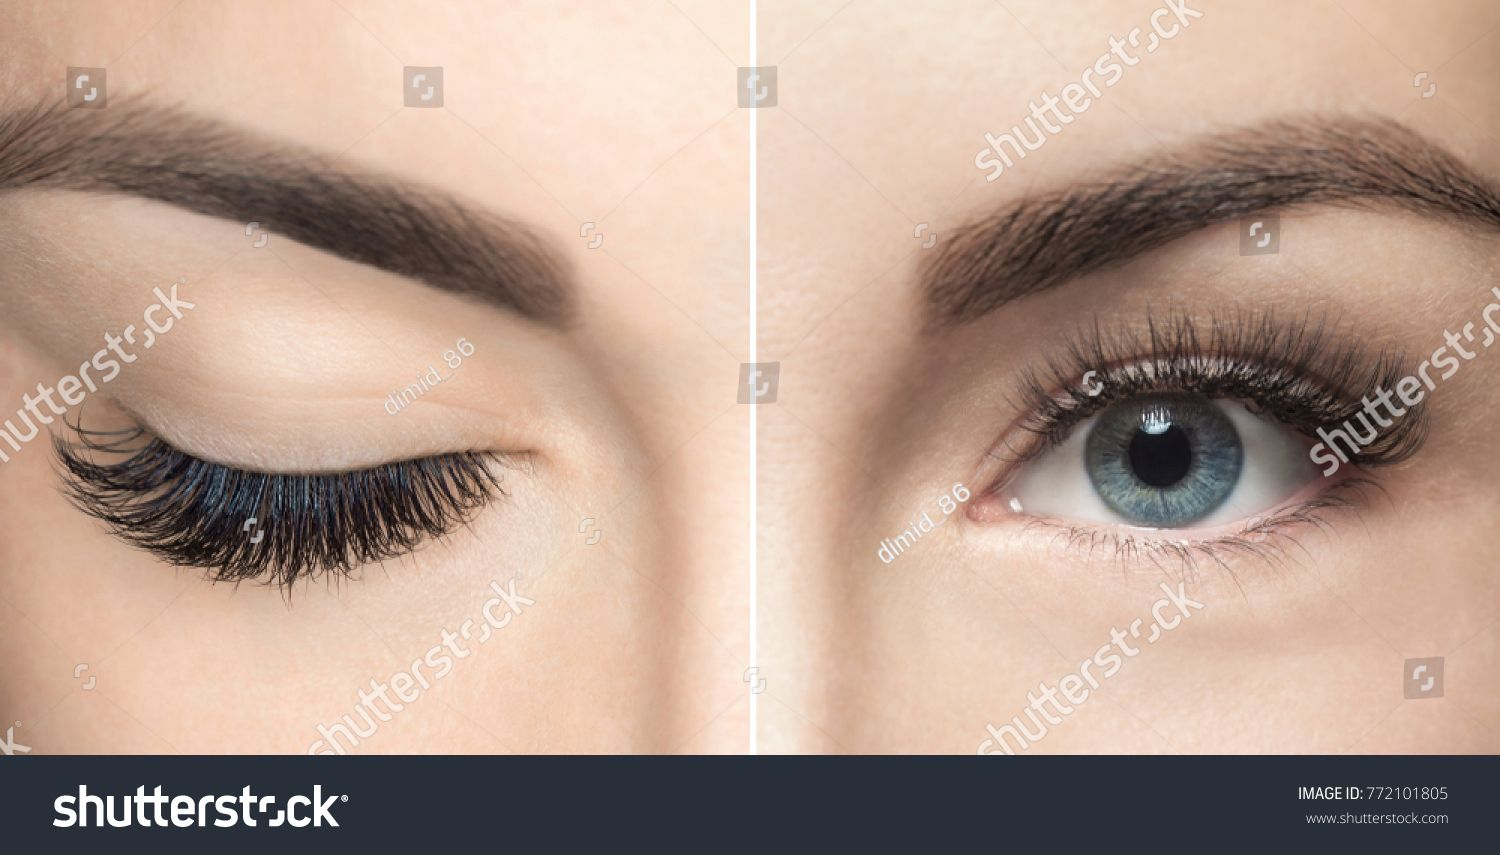 52bf147b526 Eyelash removal procedure close up. Beautiful Woman with long lashes in a  beauty salon. Eyelash extension. close#Beautiful#procedure#Eyelash